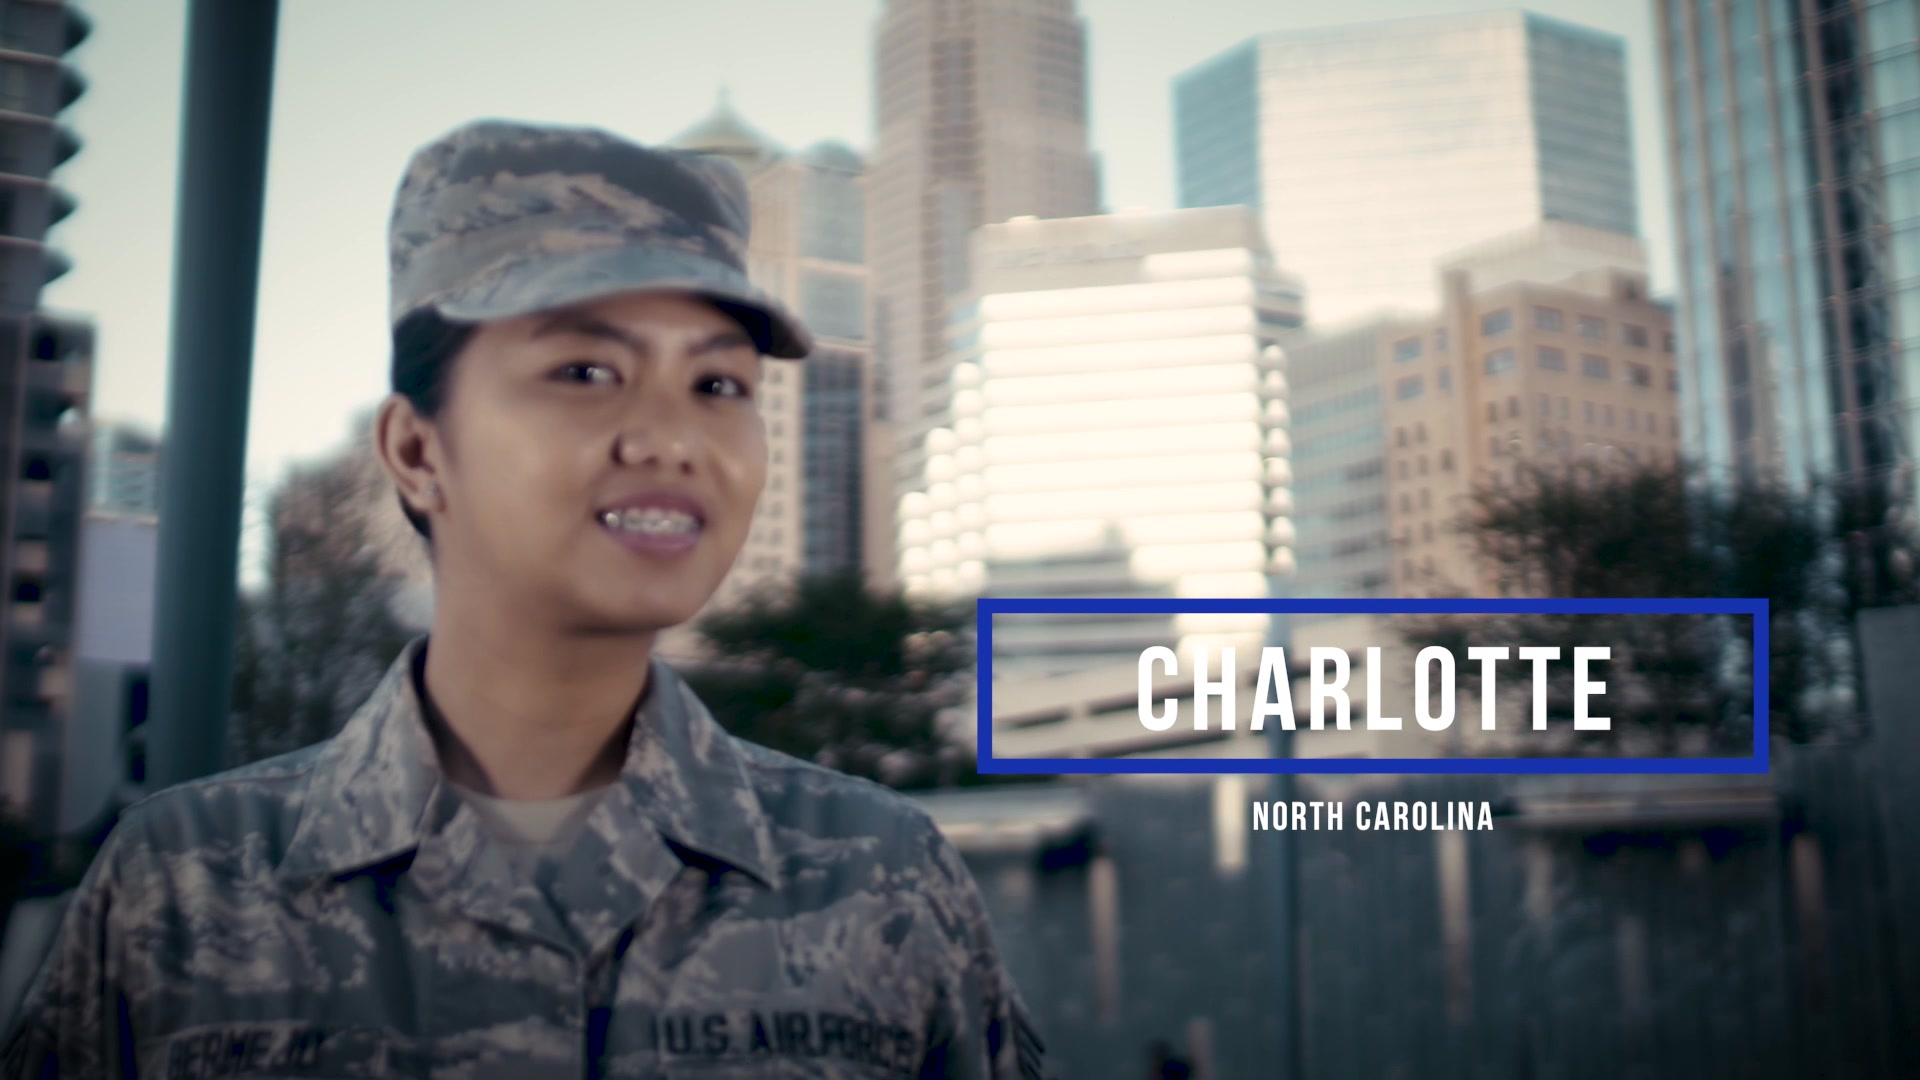 United States Air Force Senior Airman Krizelle Bermejo calls Charlotte home and is a Financial Management Technician at Offutt AFB, Nebraska.  2019 America's Air Force is an outreach effort designed to connect Americans with their Airmen and increase public knowledge of vital Air Force missions and capabilities through strategic engagements in cities across America.